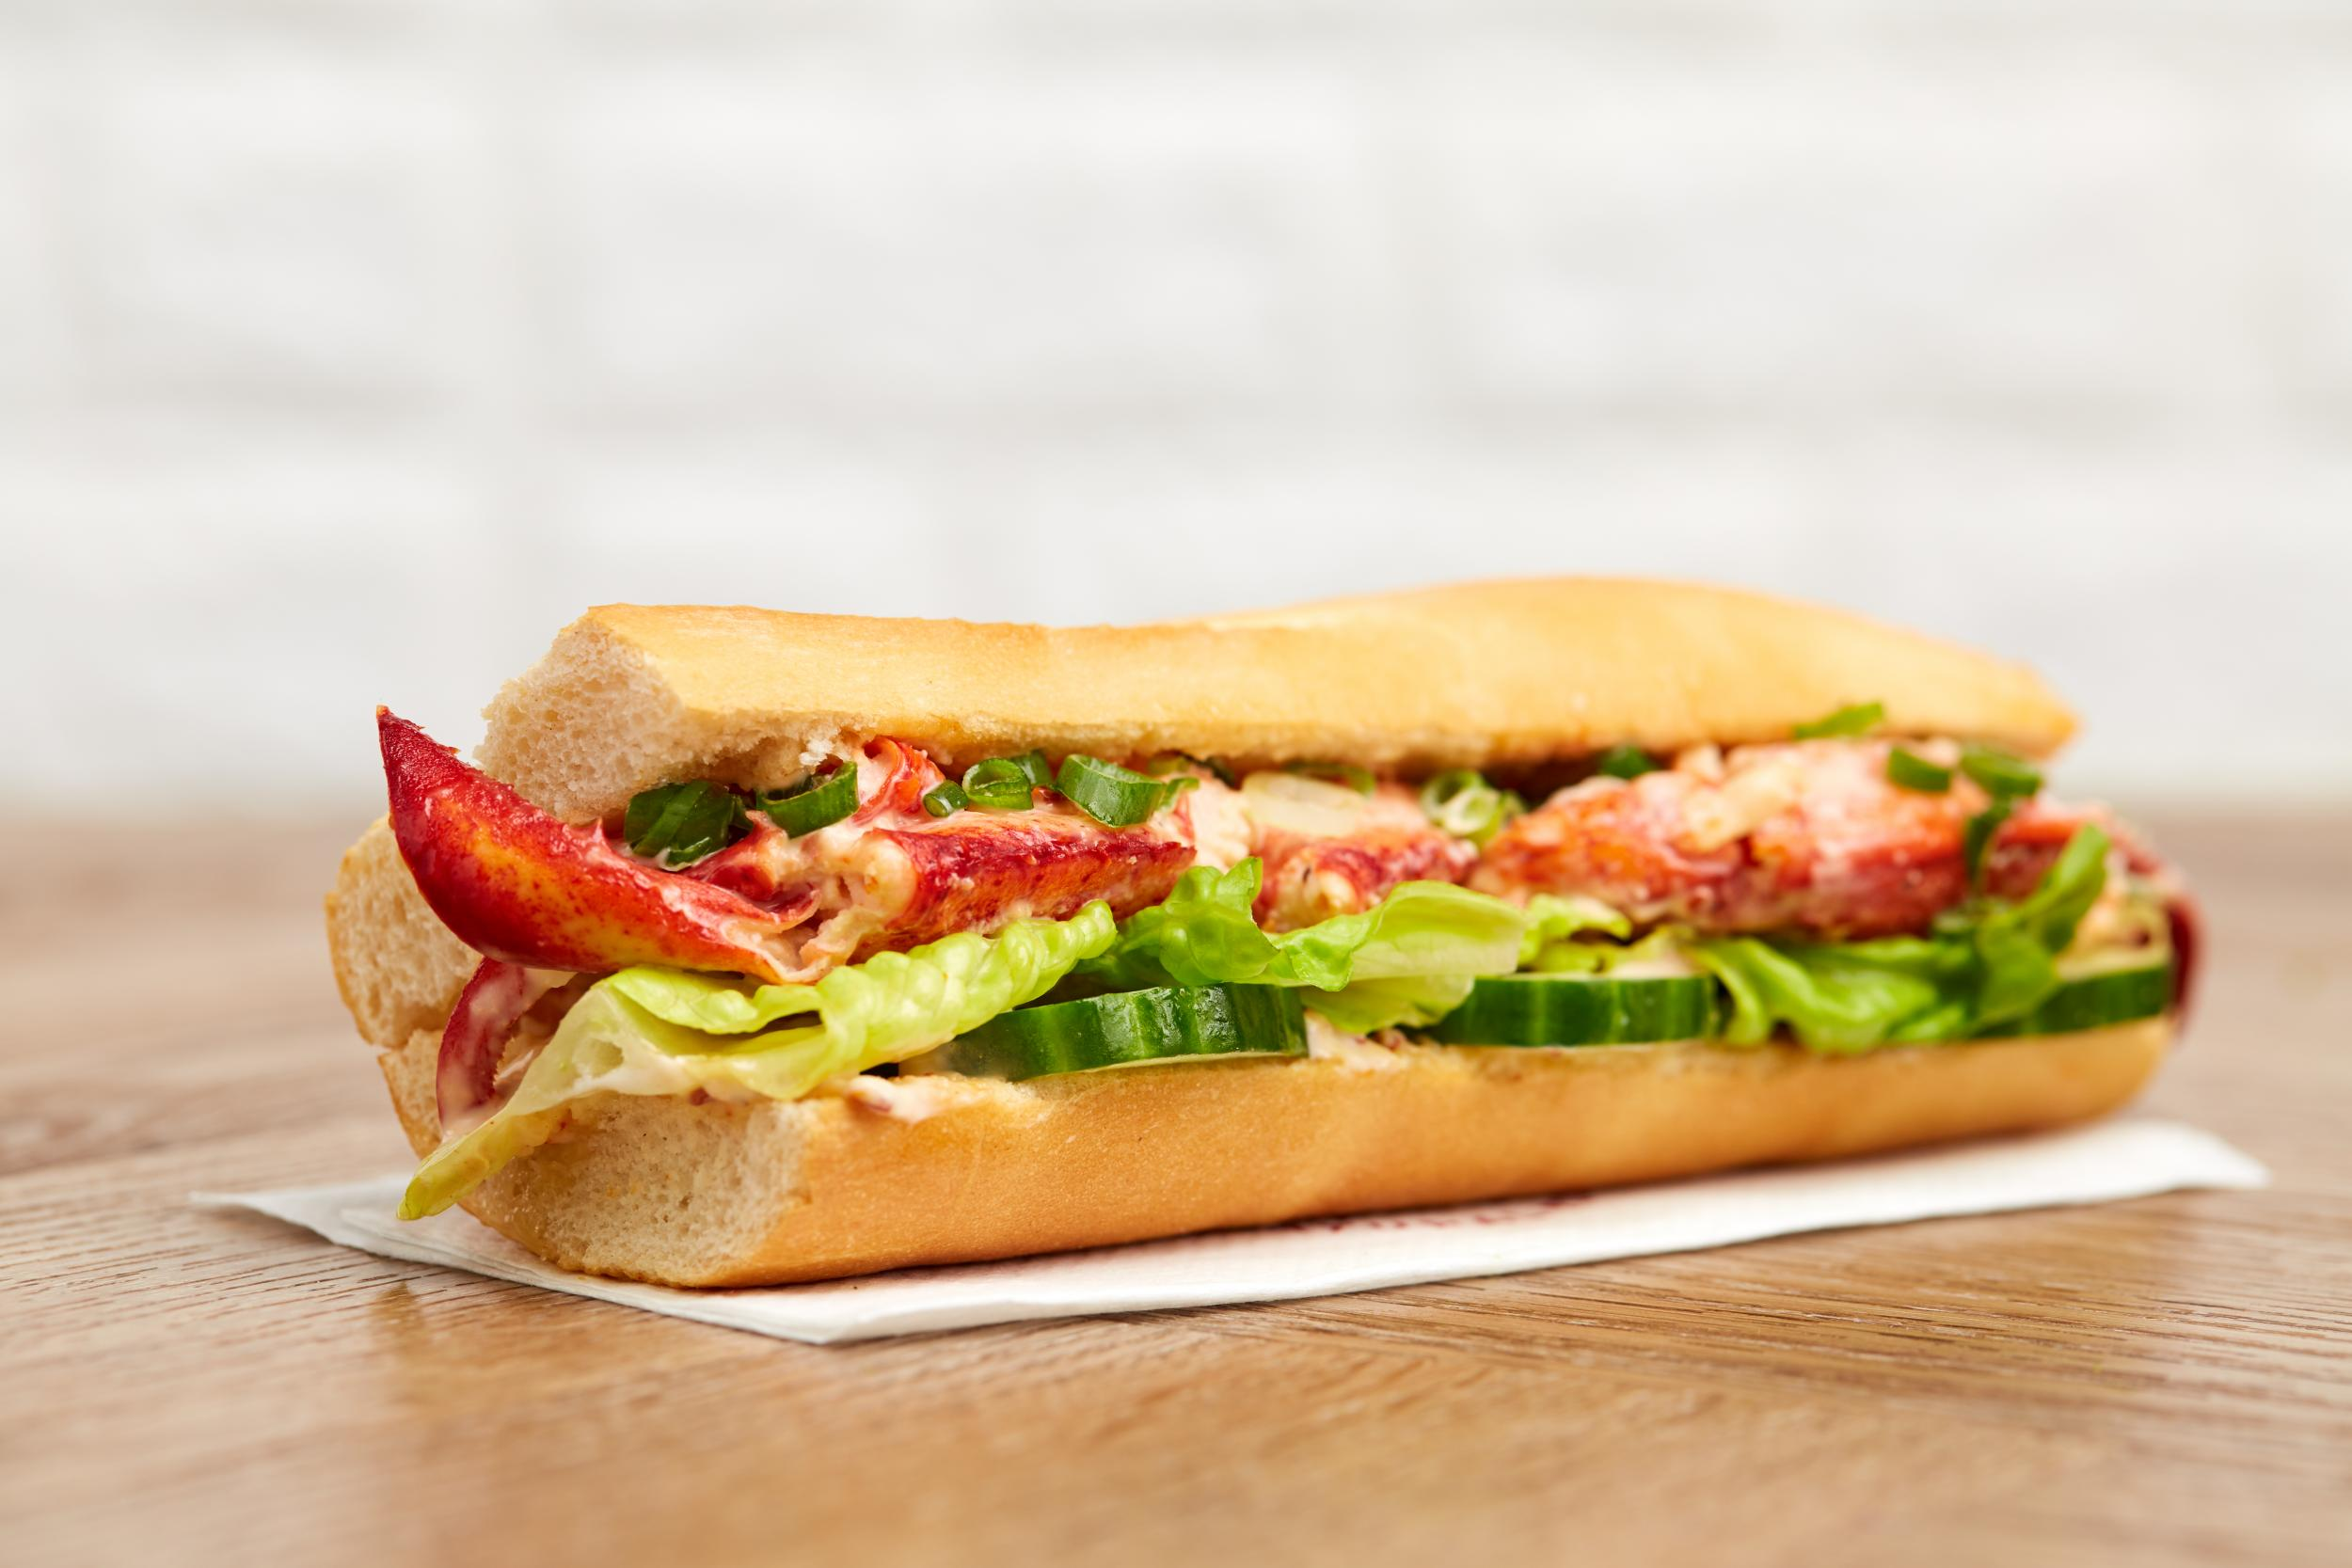 Iconic American Sandwich Gets the Pret a Manger Treatment